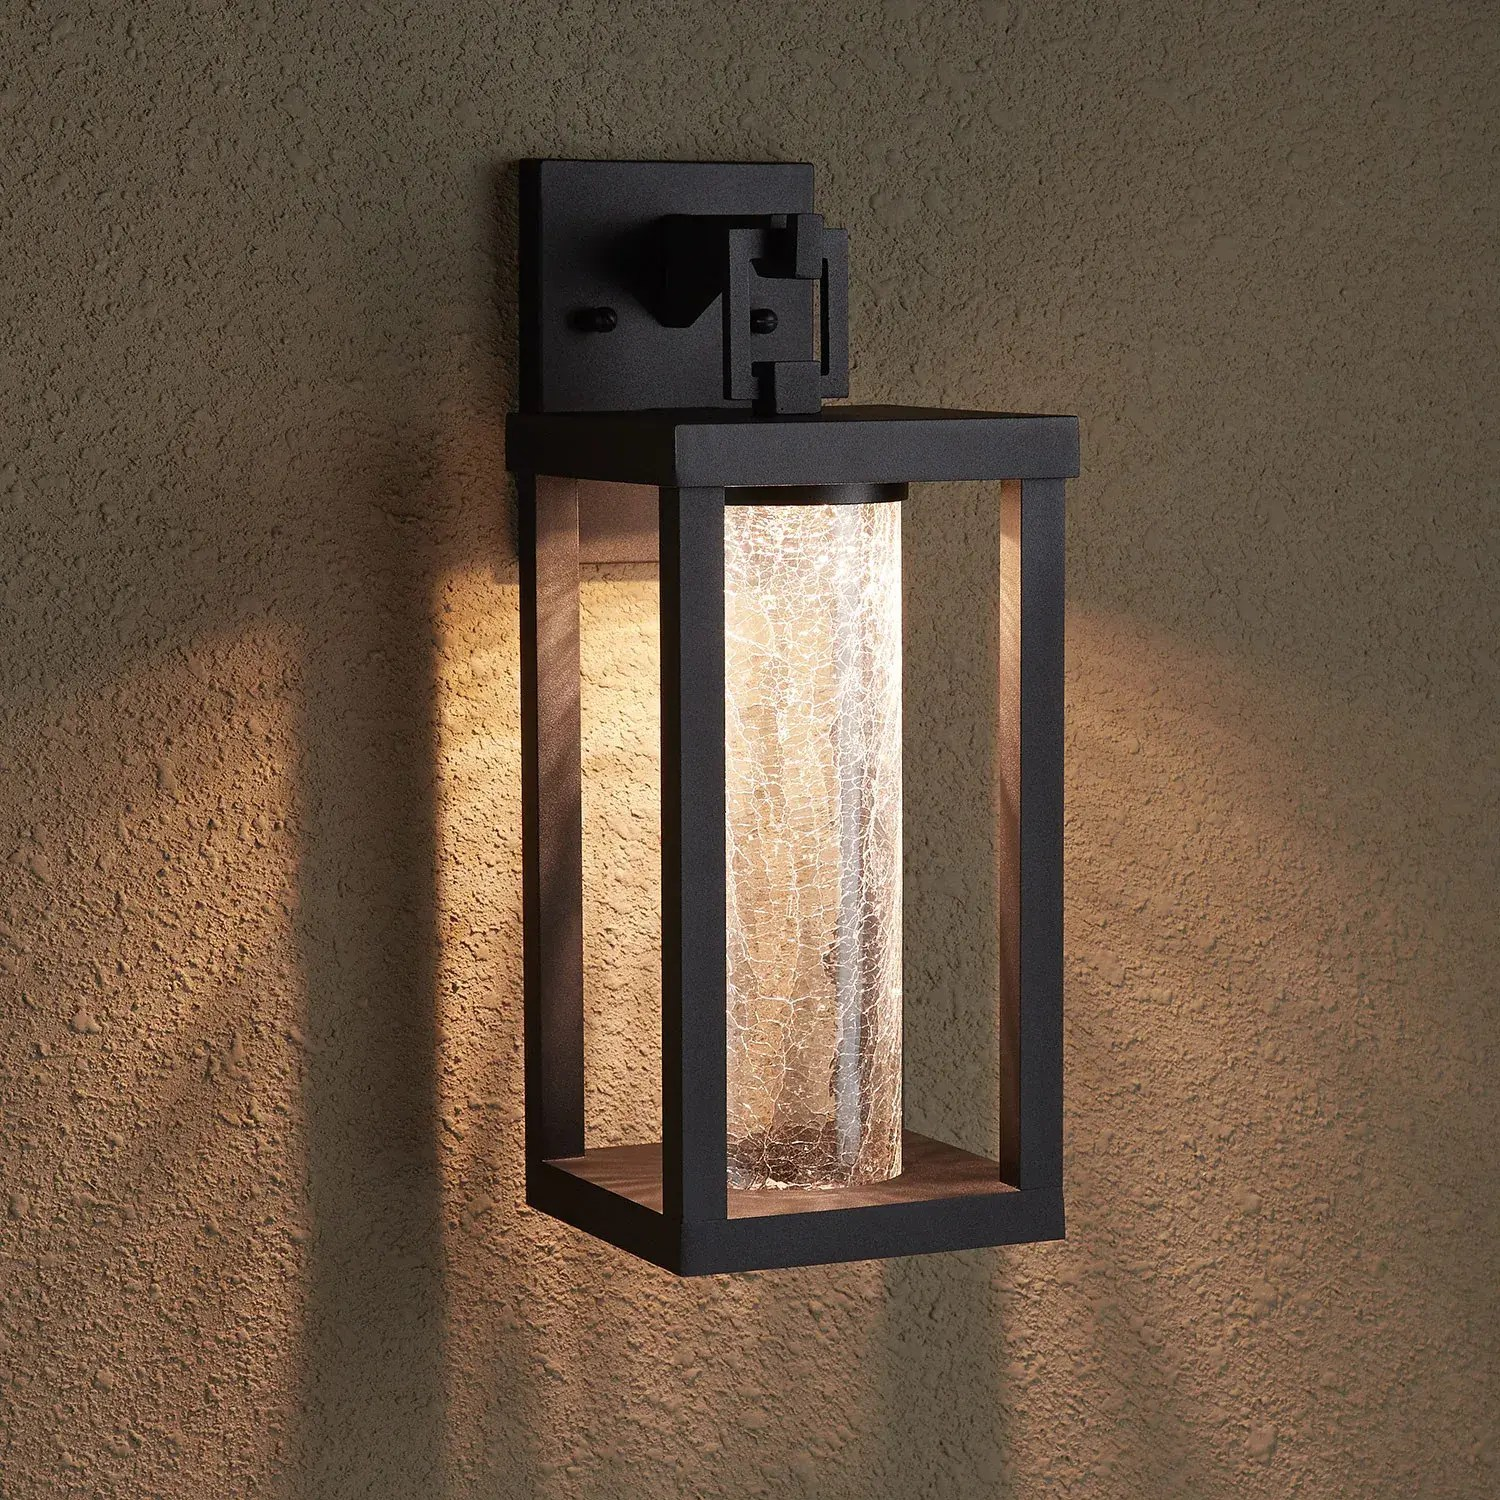 topping outdoor entrance wall sconce single led light black